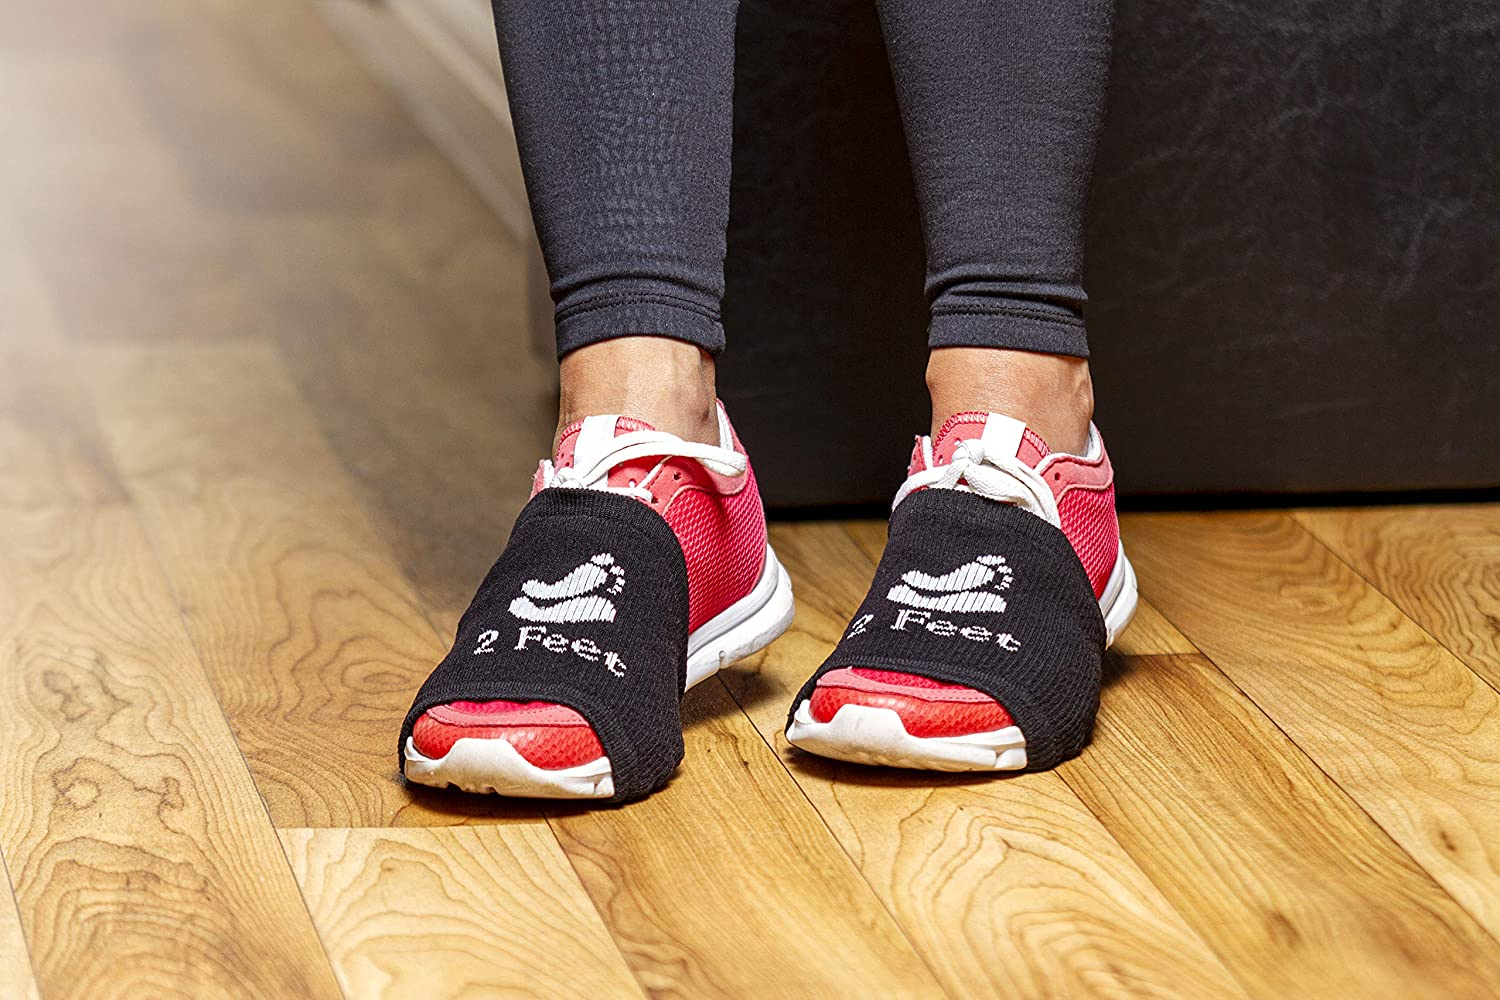 One Black Pair Pack Smooth Pivots /& Turns to Dance with Style on Wood Floors Over Sneakers 2 FEET Sock for Dancing on Smooth Floors Protect Knees